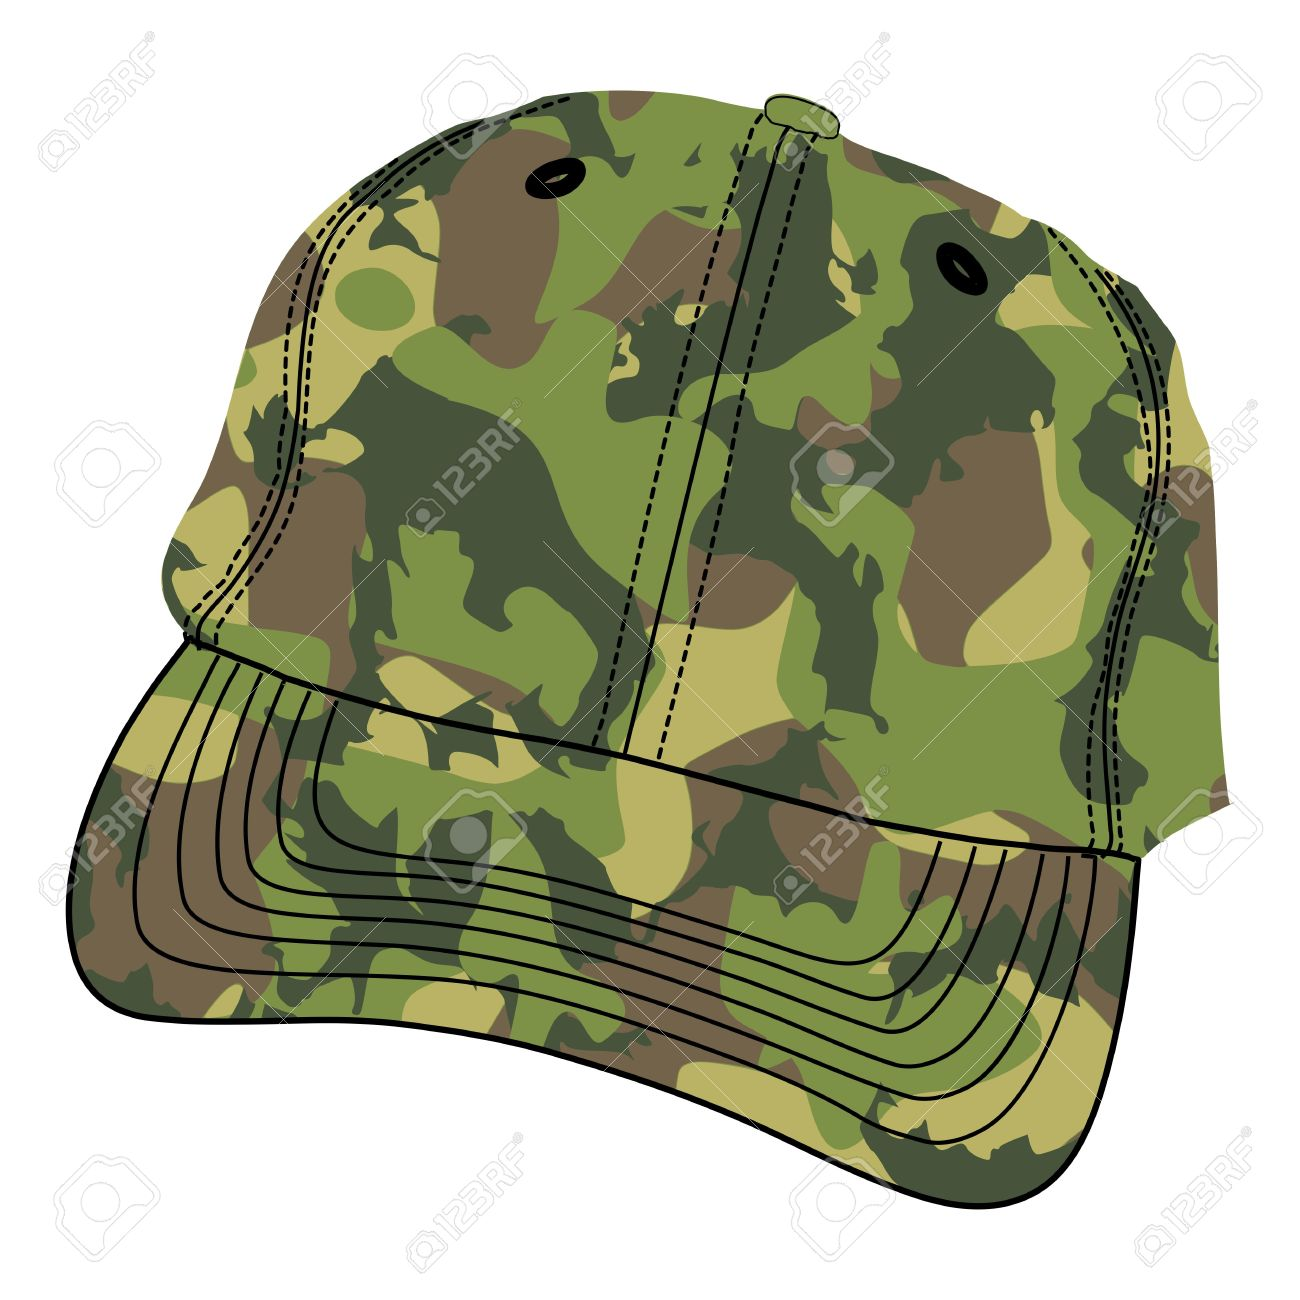 Army hat clipart.